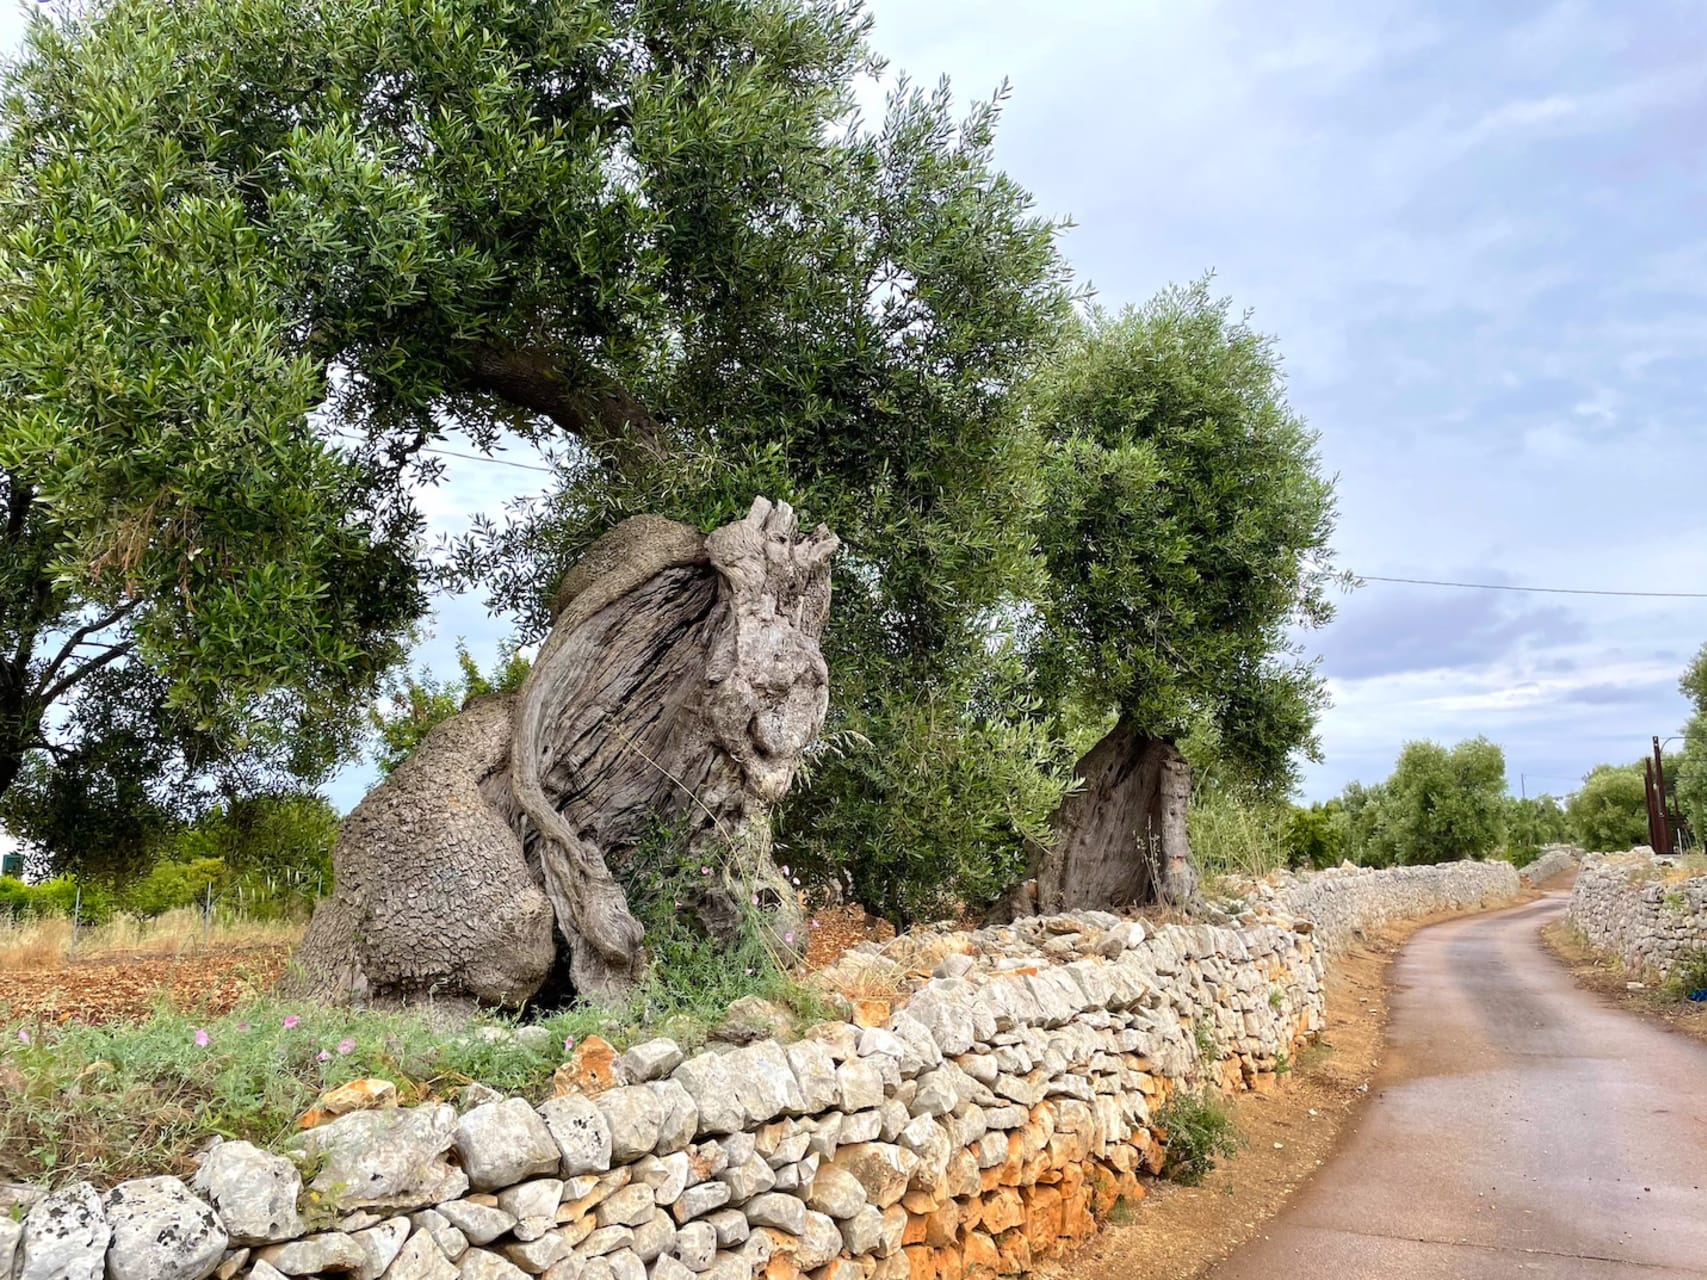 Puglia - The monumental Olive Trees of Puglia: If they could speak they would have thousands of stories to tell